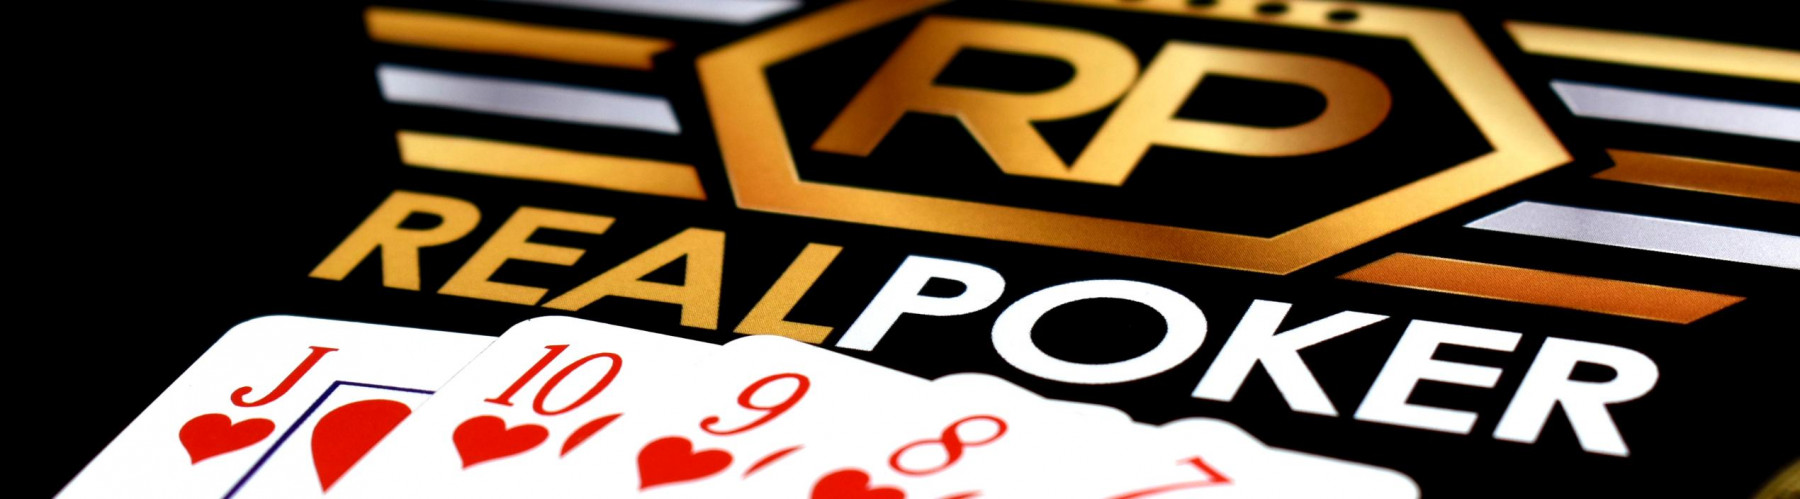 Bluffing as a Skill for Professional Poker Players